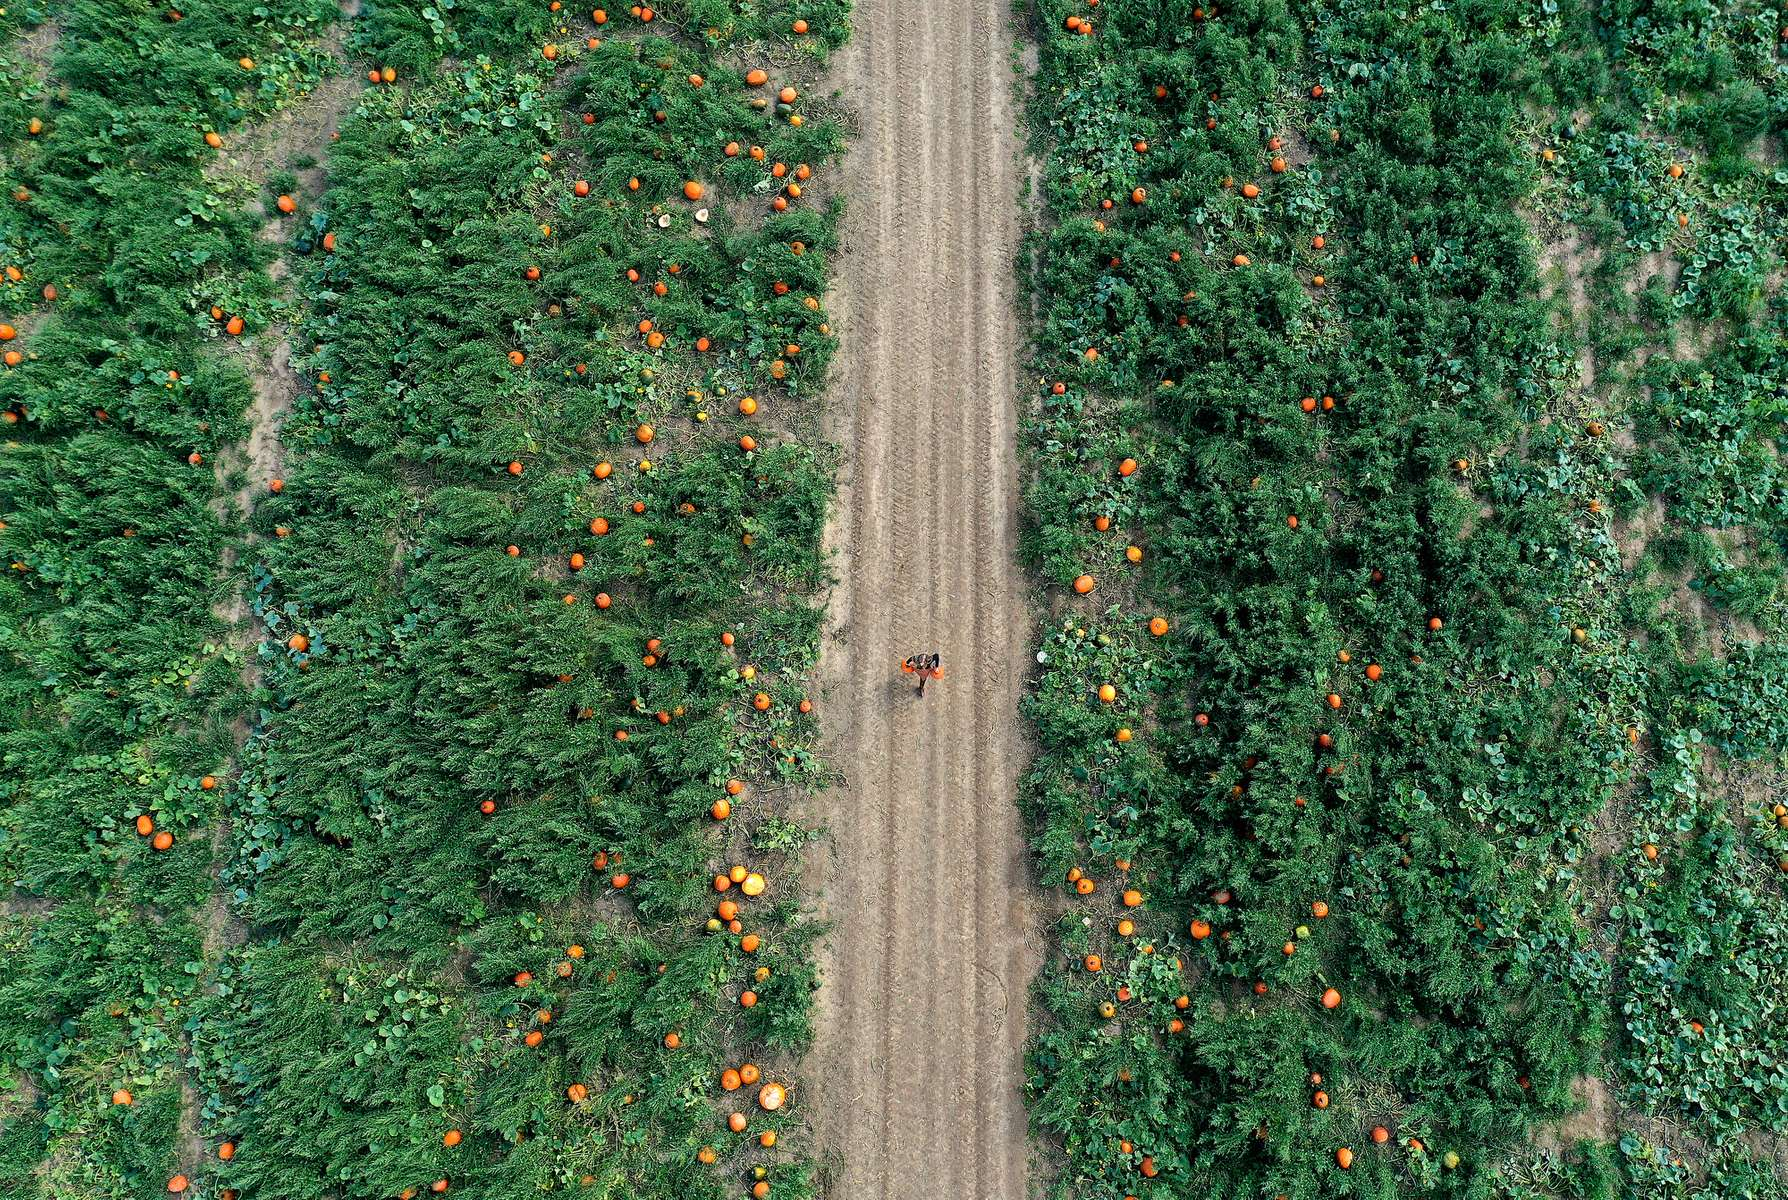 An aerial view of a person picking pumpkins at Harbes Family Farm on October 06, 2020 in Mattituck, New York.